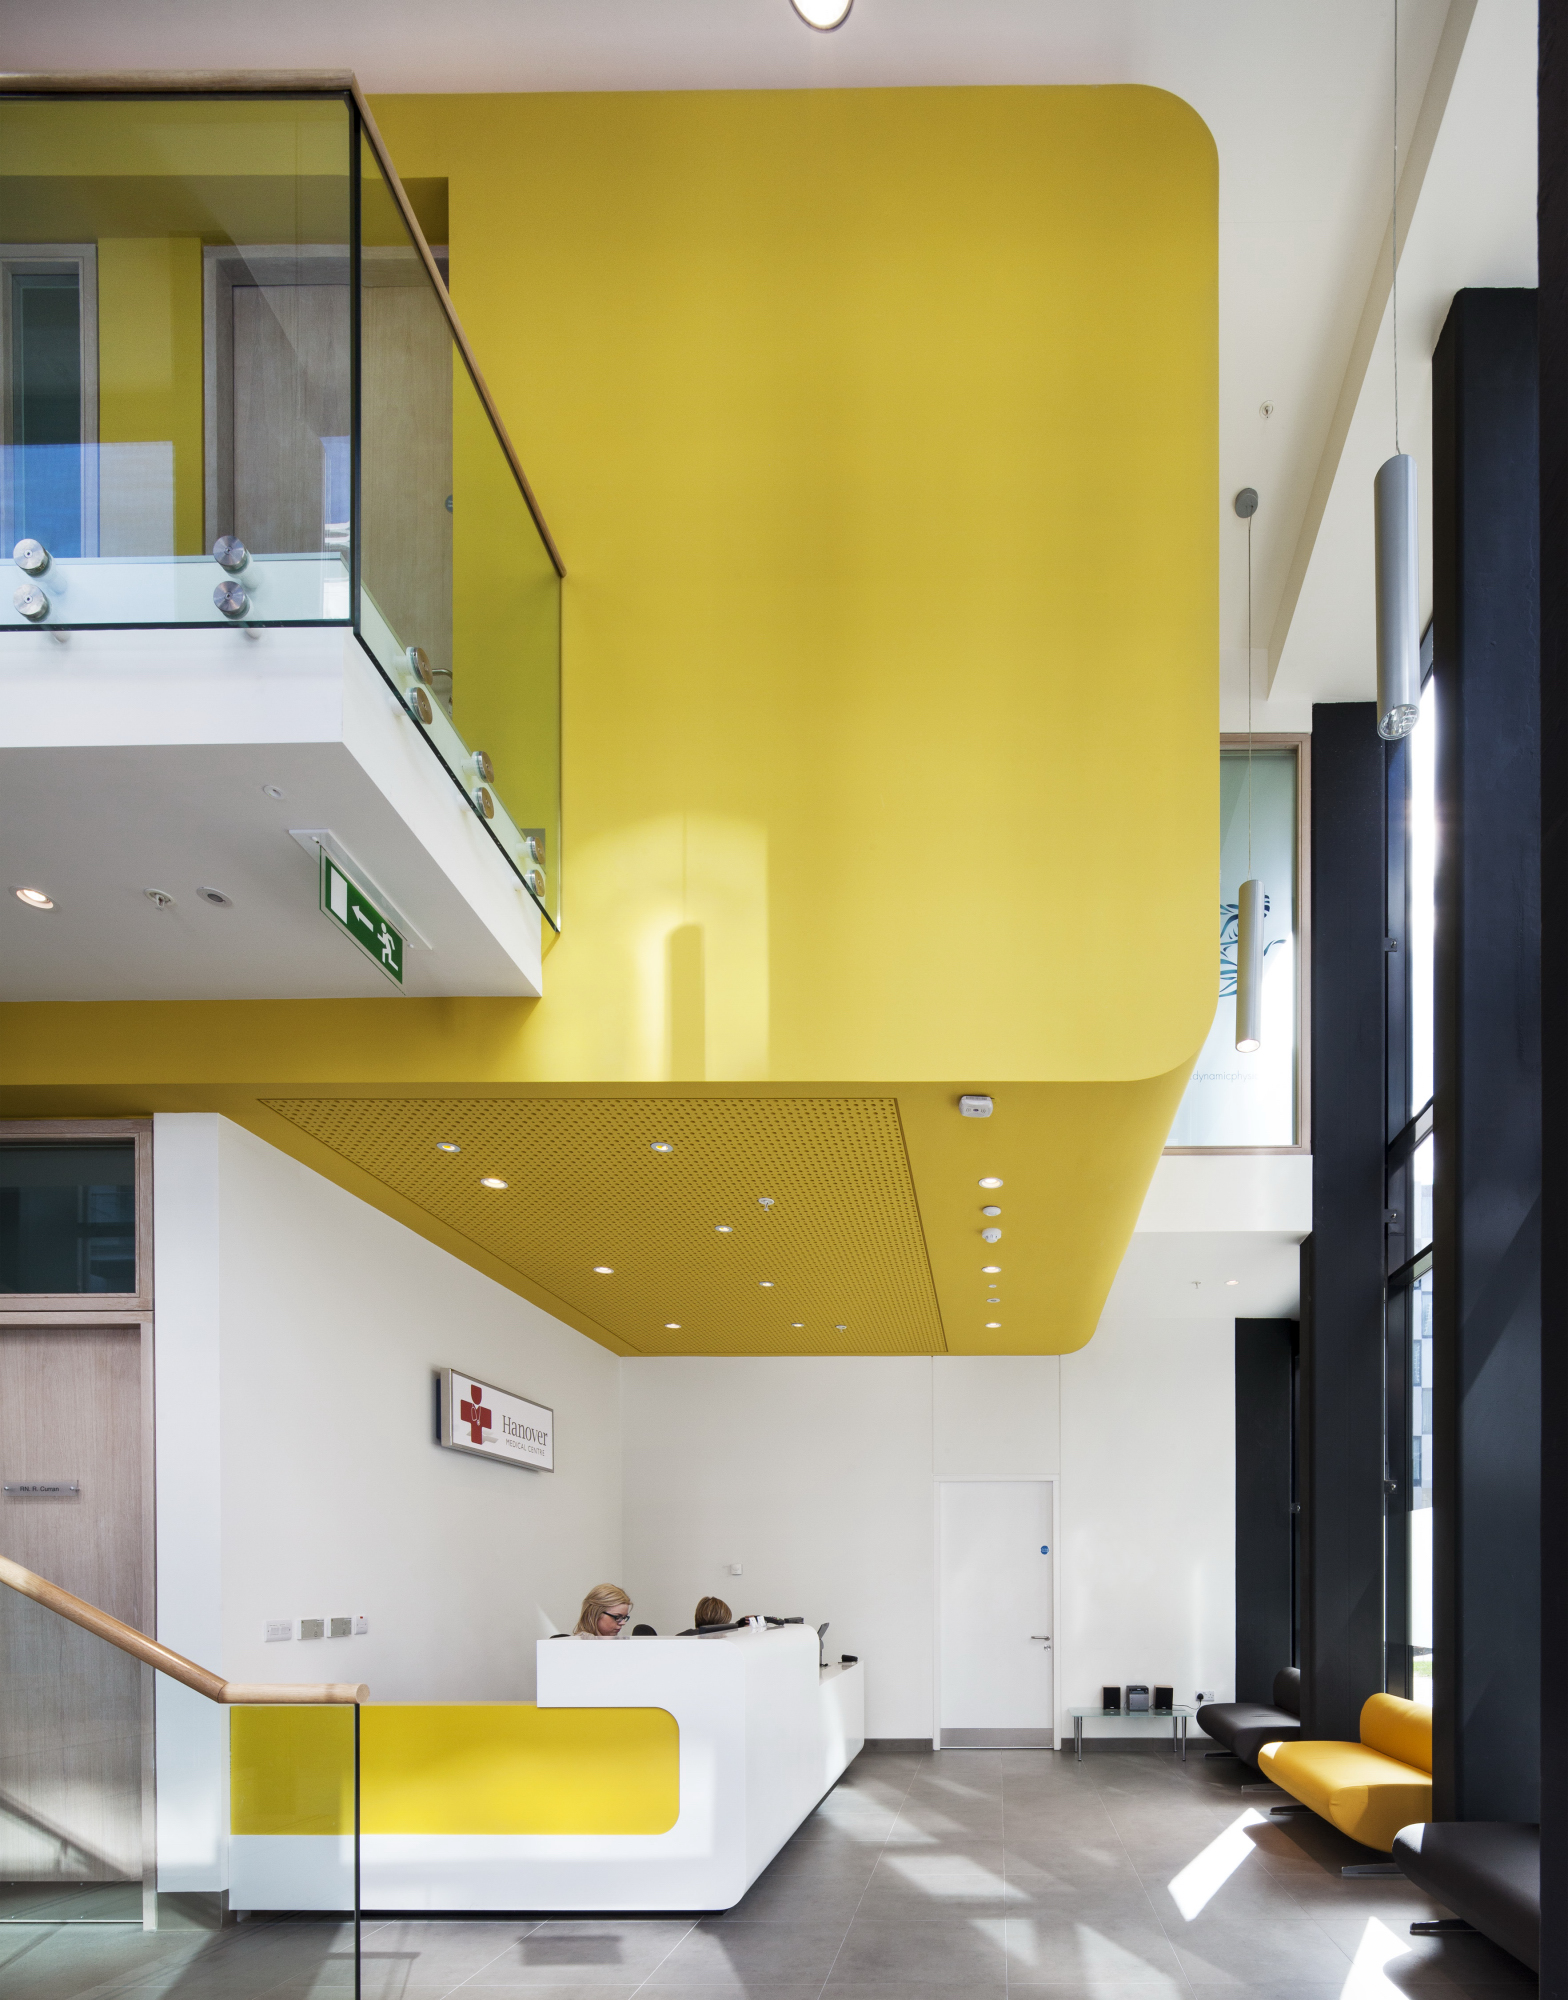 Hanover Medical Centre   Hanover Medical is a fit-out for a new general practice located in the Dublin Docklands.